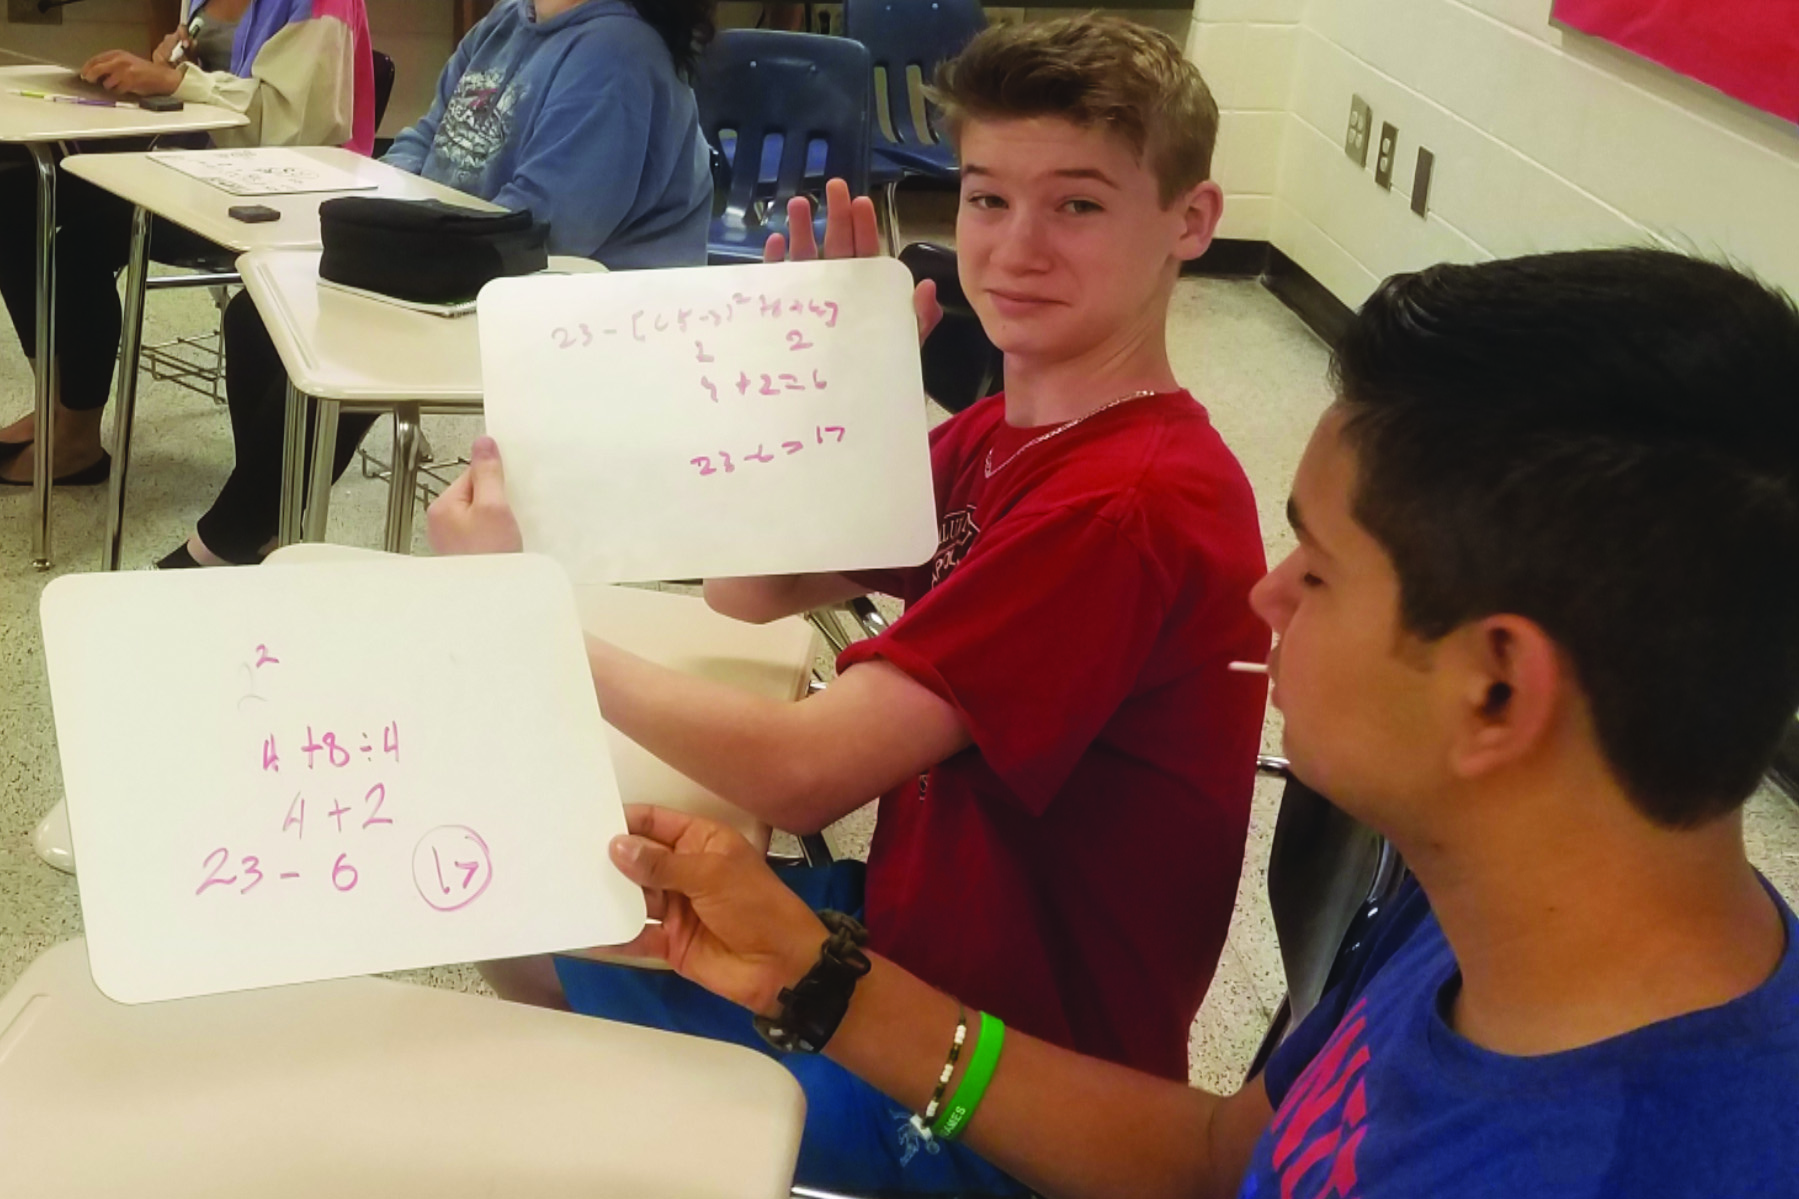 Creekview High School rising freshmen Toby Kennedy and Jesus Adrian Duarte-Armas participate in a math class as part of the school's 'summer bridge' program.